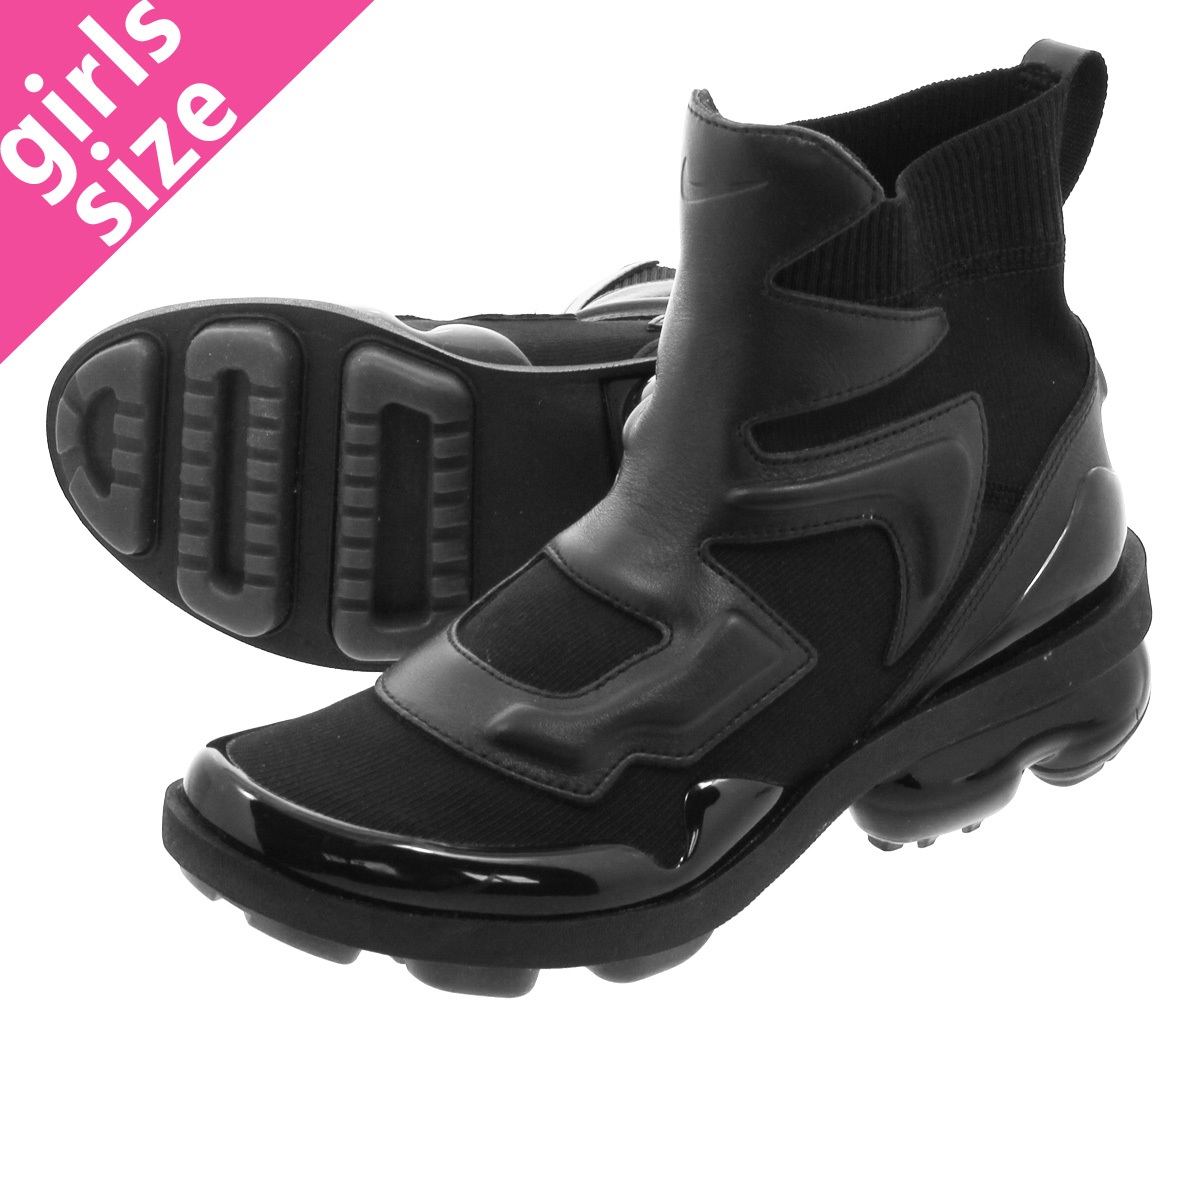 fec2be459a29c NIKE WMNS AIR VAPORMAX LIGHT II Nike women air vapor max light 2  BLACK BLACK BLACK ao4537-001